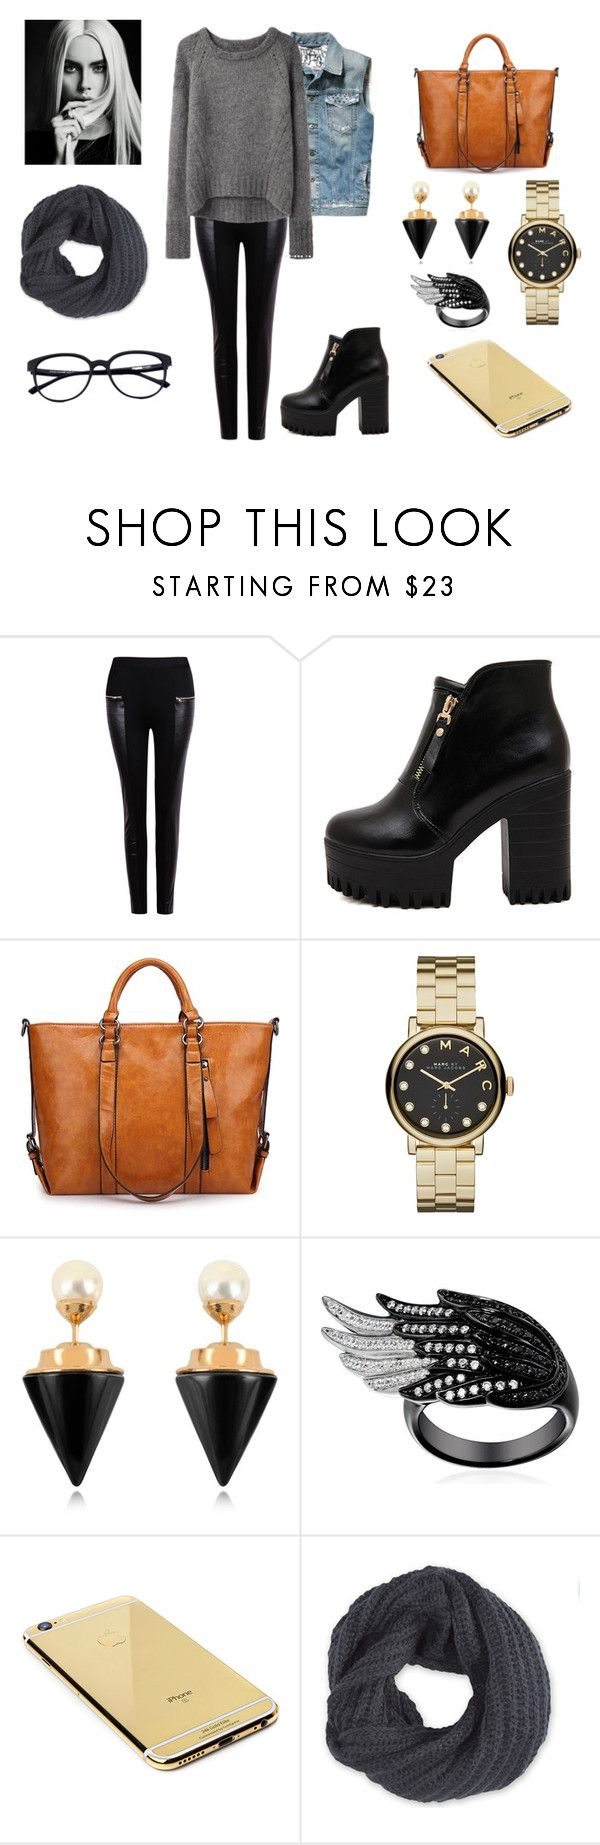 """""""*)"""" by dragan-2001 on Polyvore featuring мода, Pepe Jeans London, Marc by Marc Jacobs, Vita Fede, Goldgenie и Frenchi"""